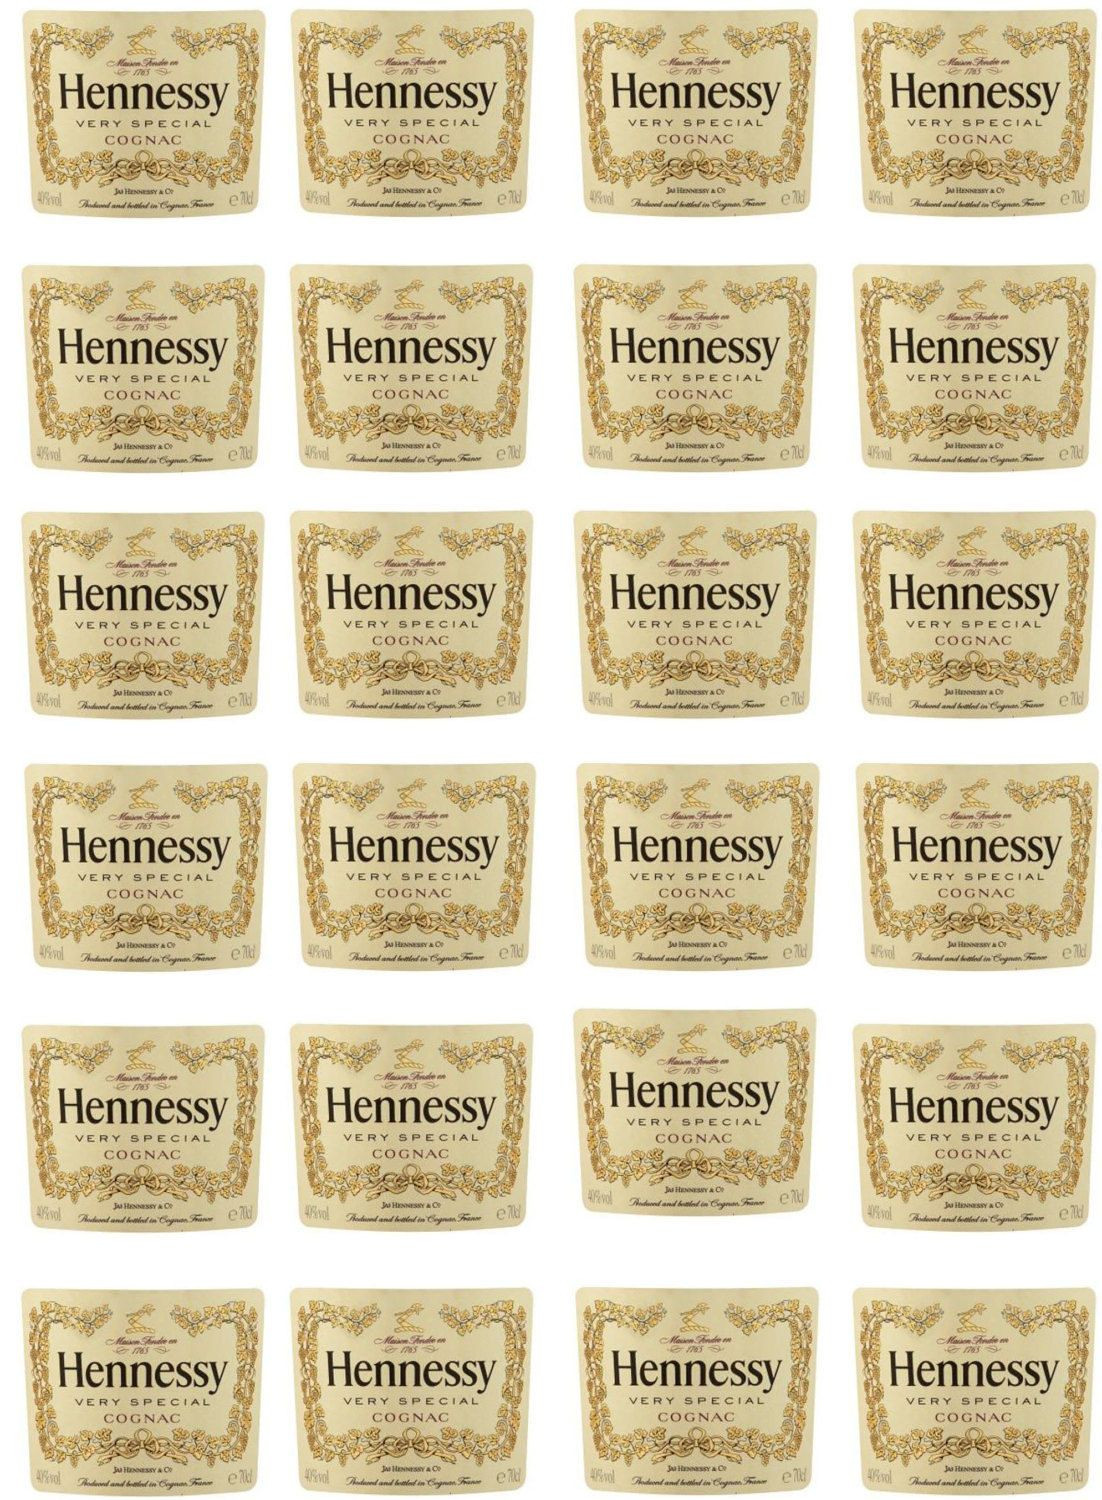 Hennessy Bottle Edible Image Labels